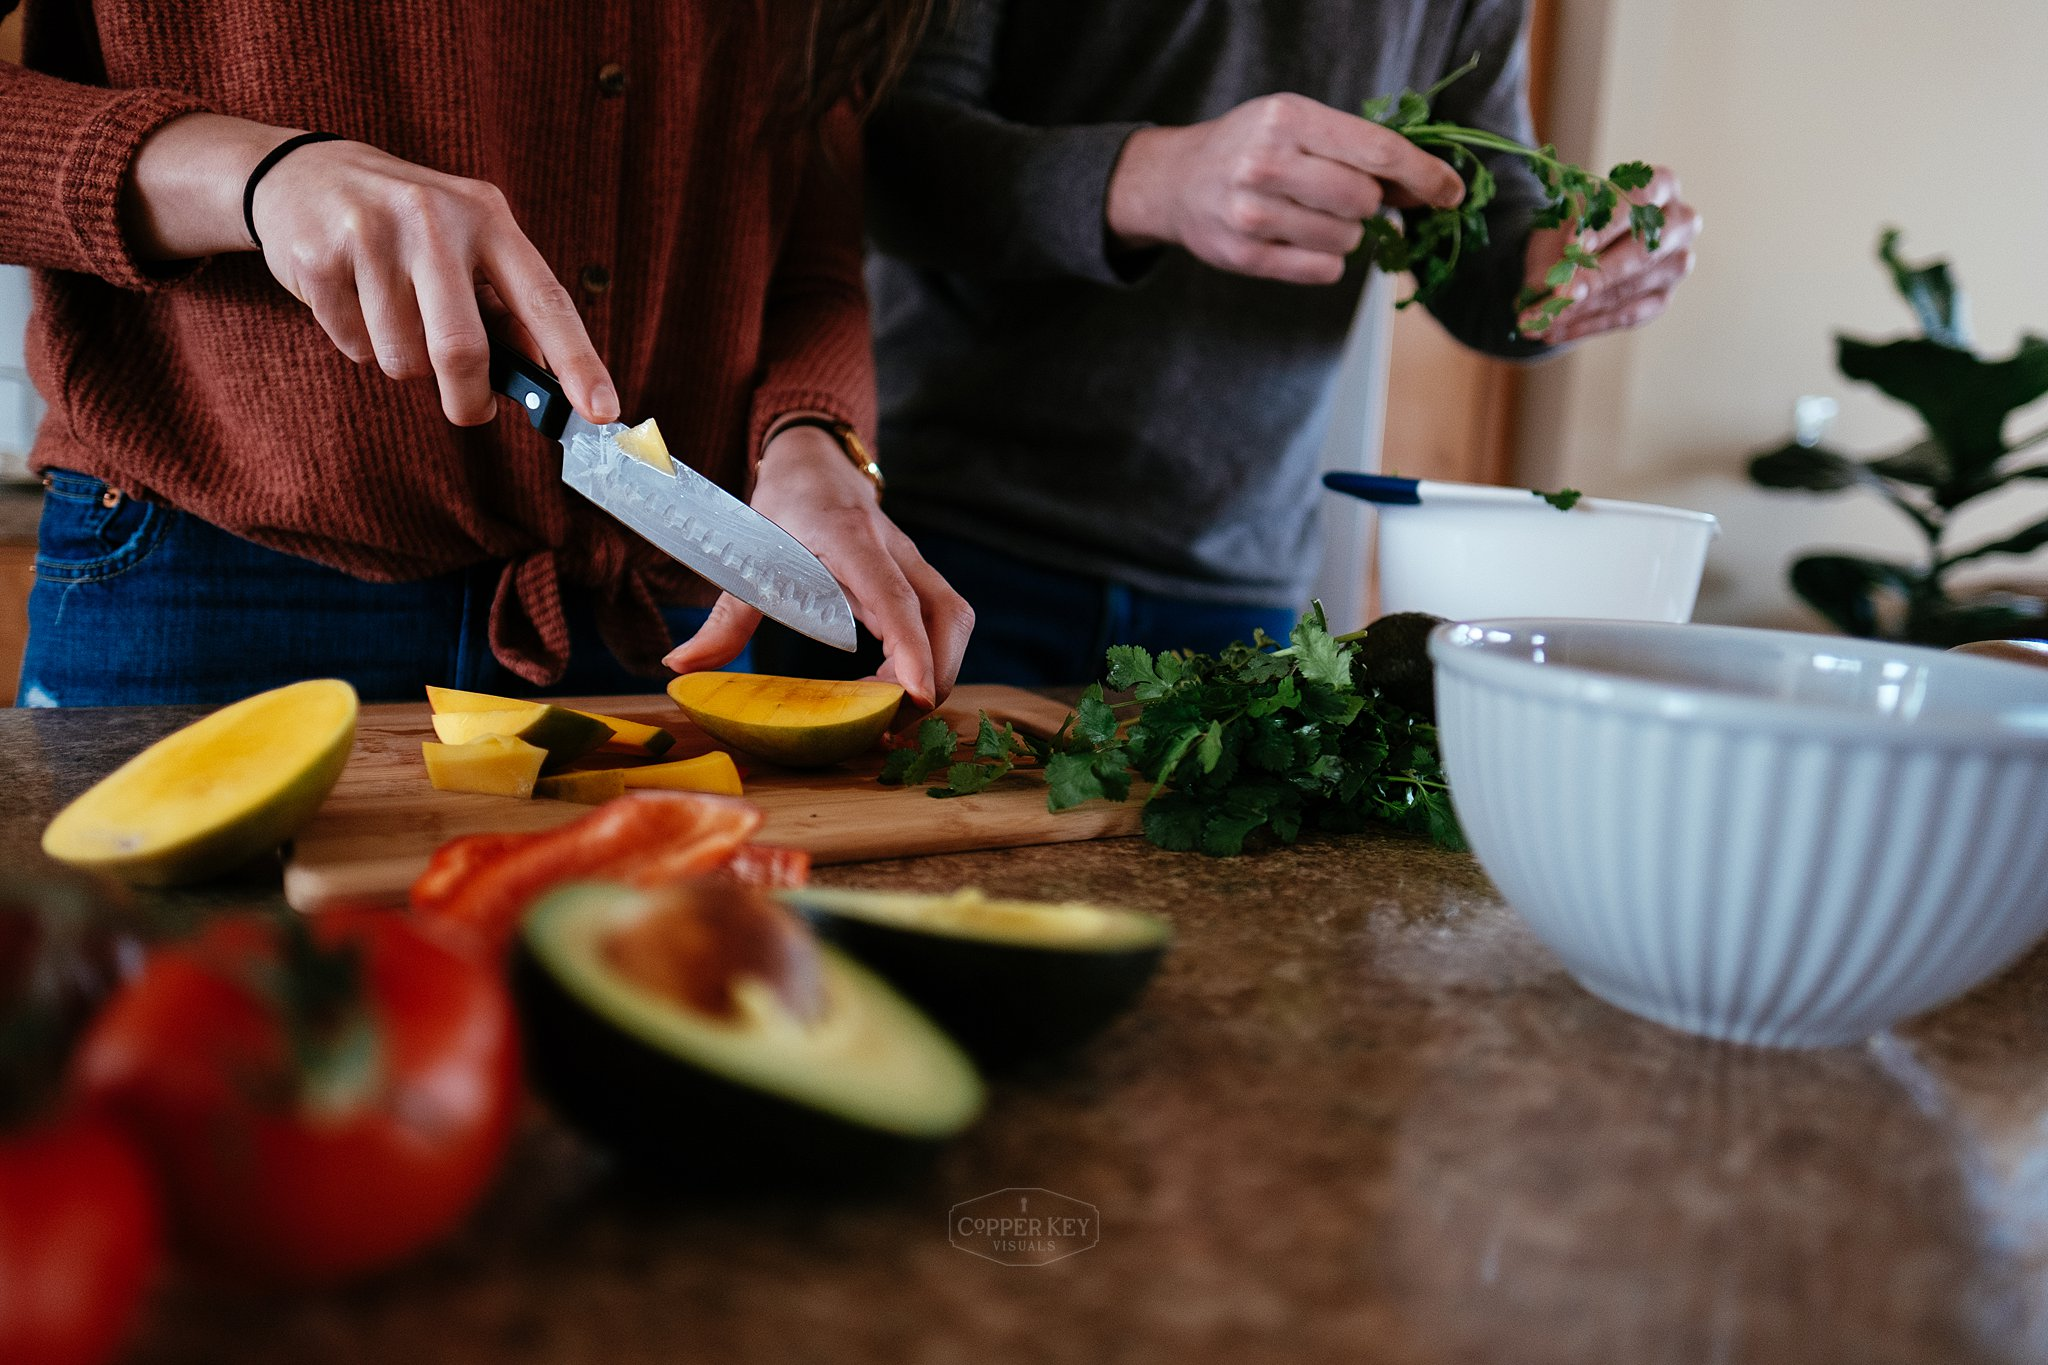 Copper Key Visuals Cooking Engagement Session-13.jpg